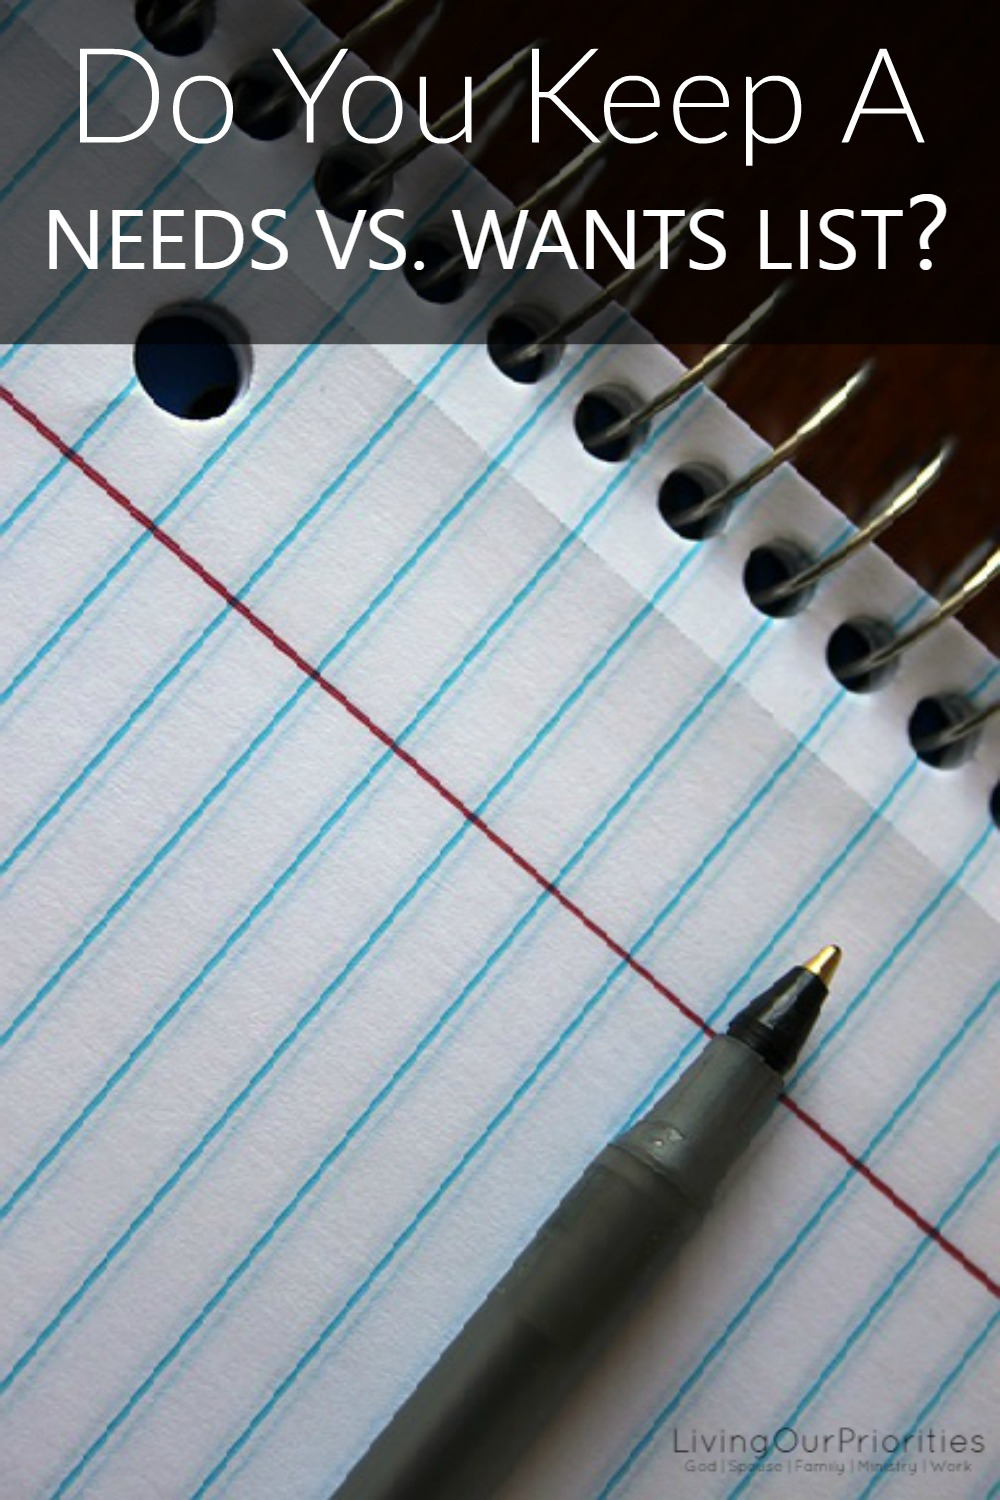 Needs vs wants in a relationship